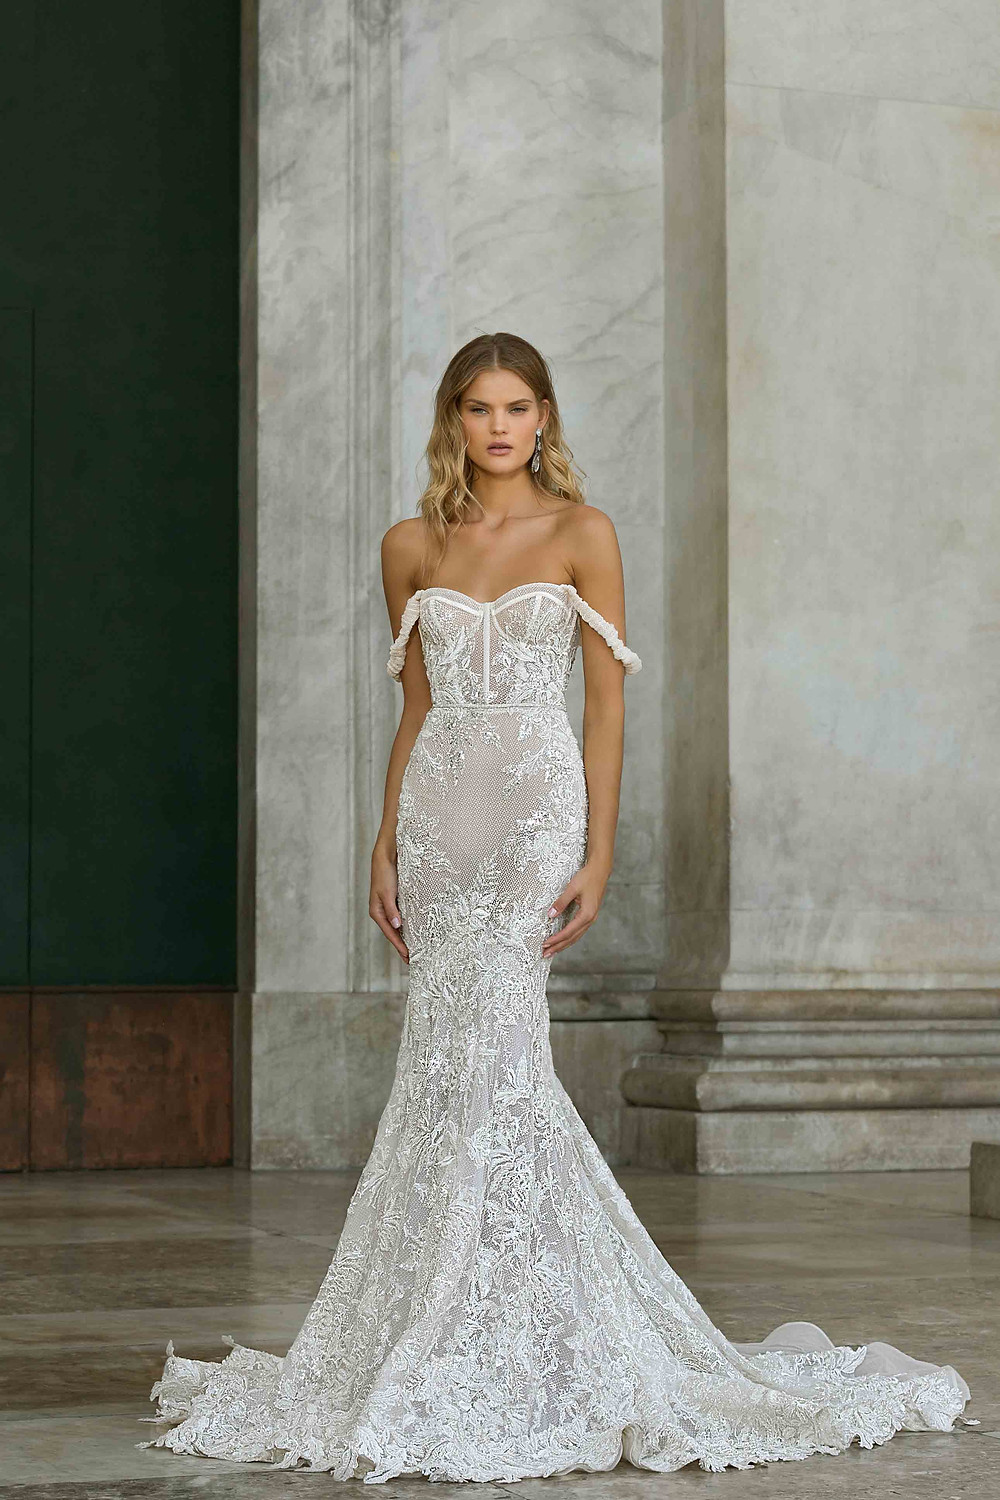 An off the shoulder, corset mermaid wedding dress with lace